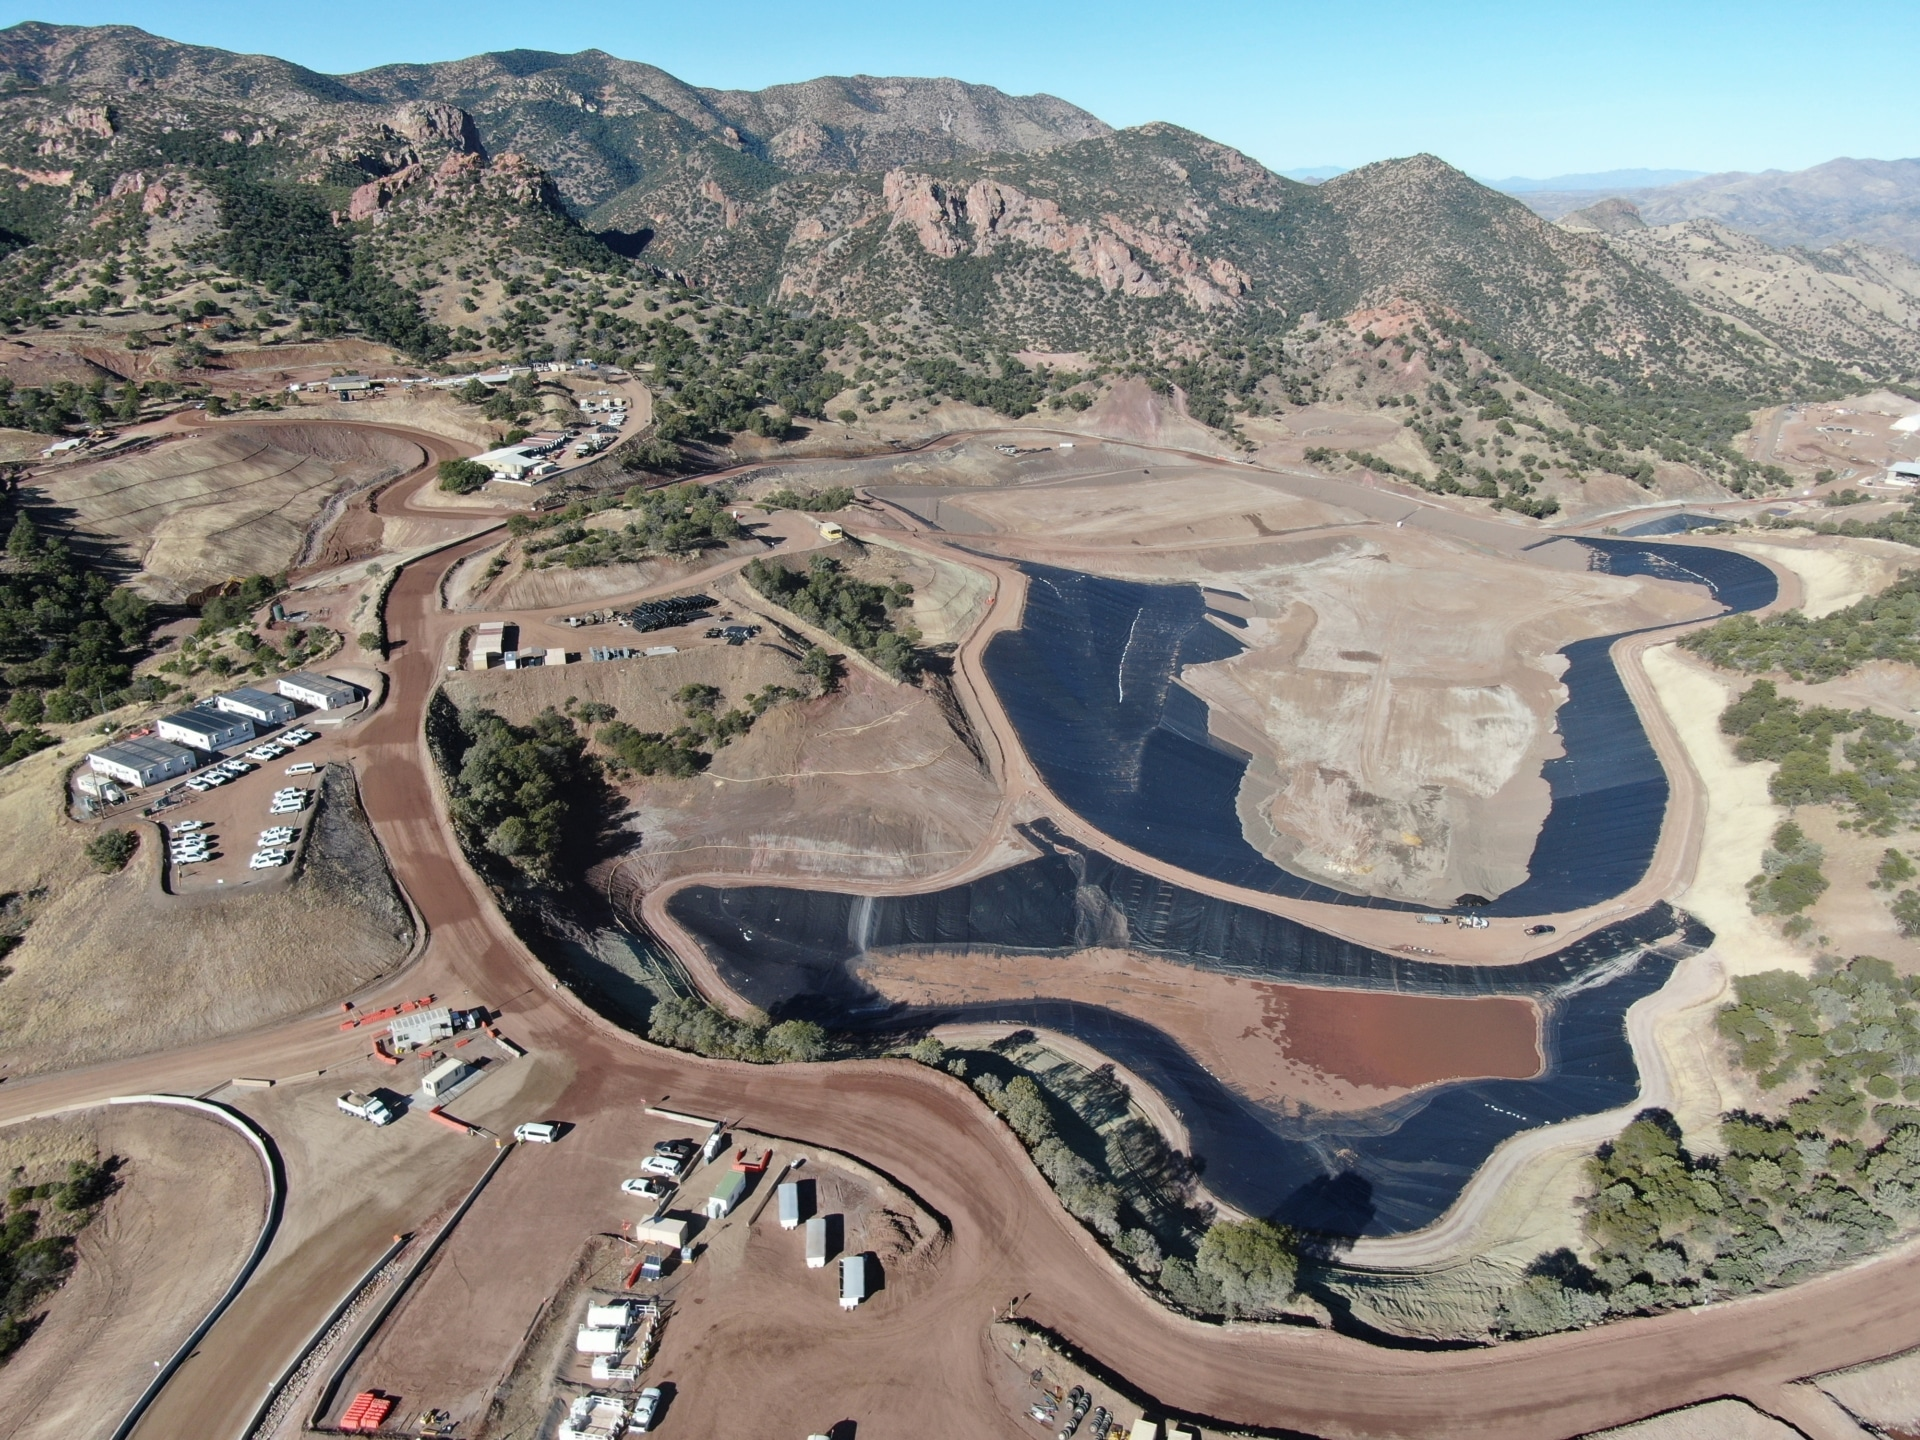 South32 completes $30 million remediation of Trench Mine